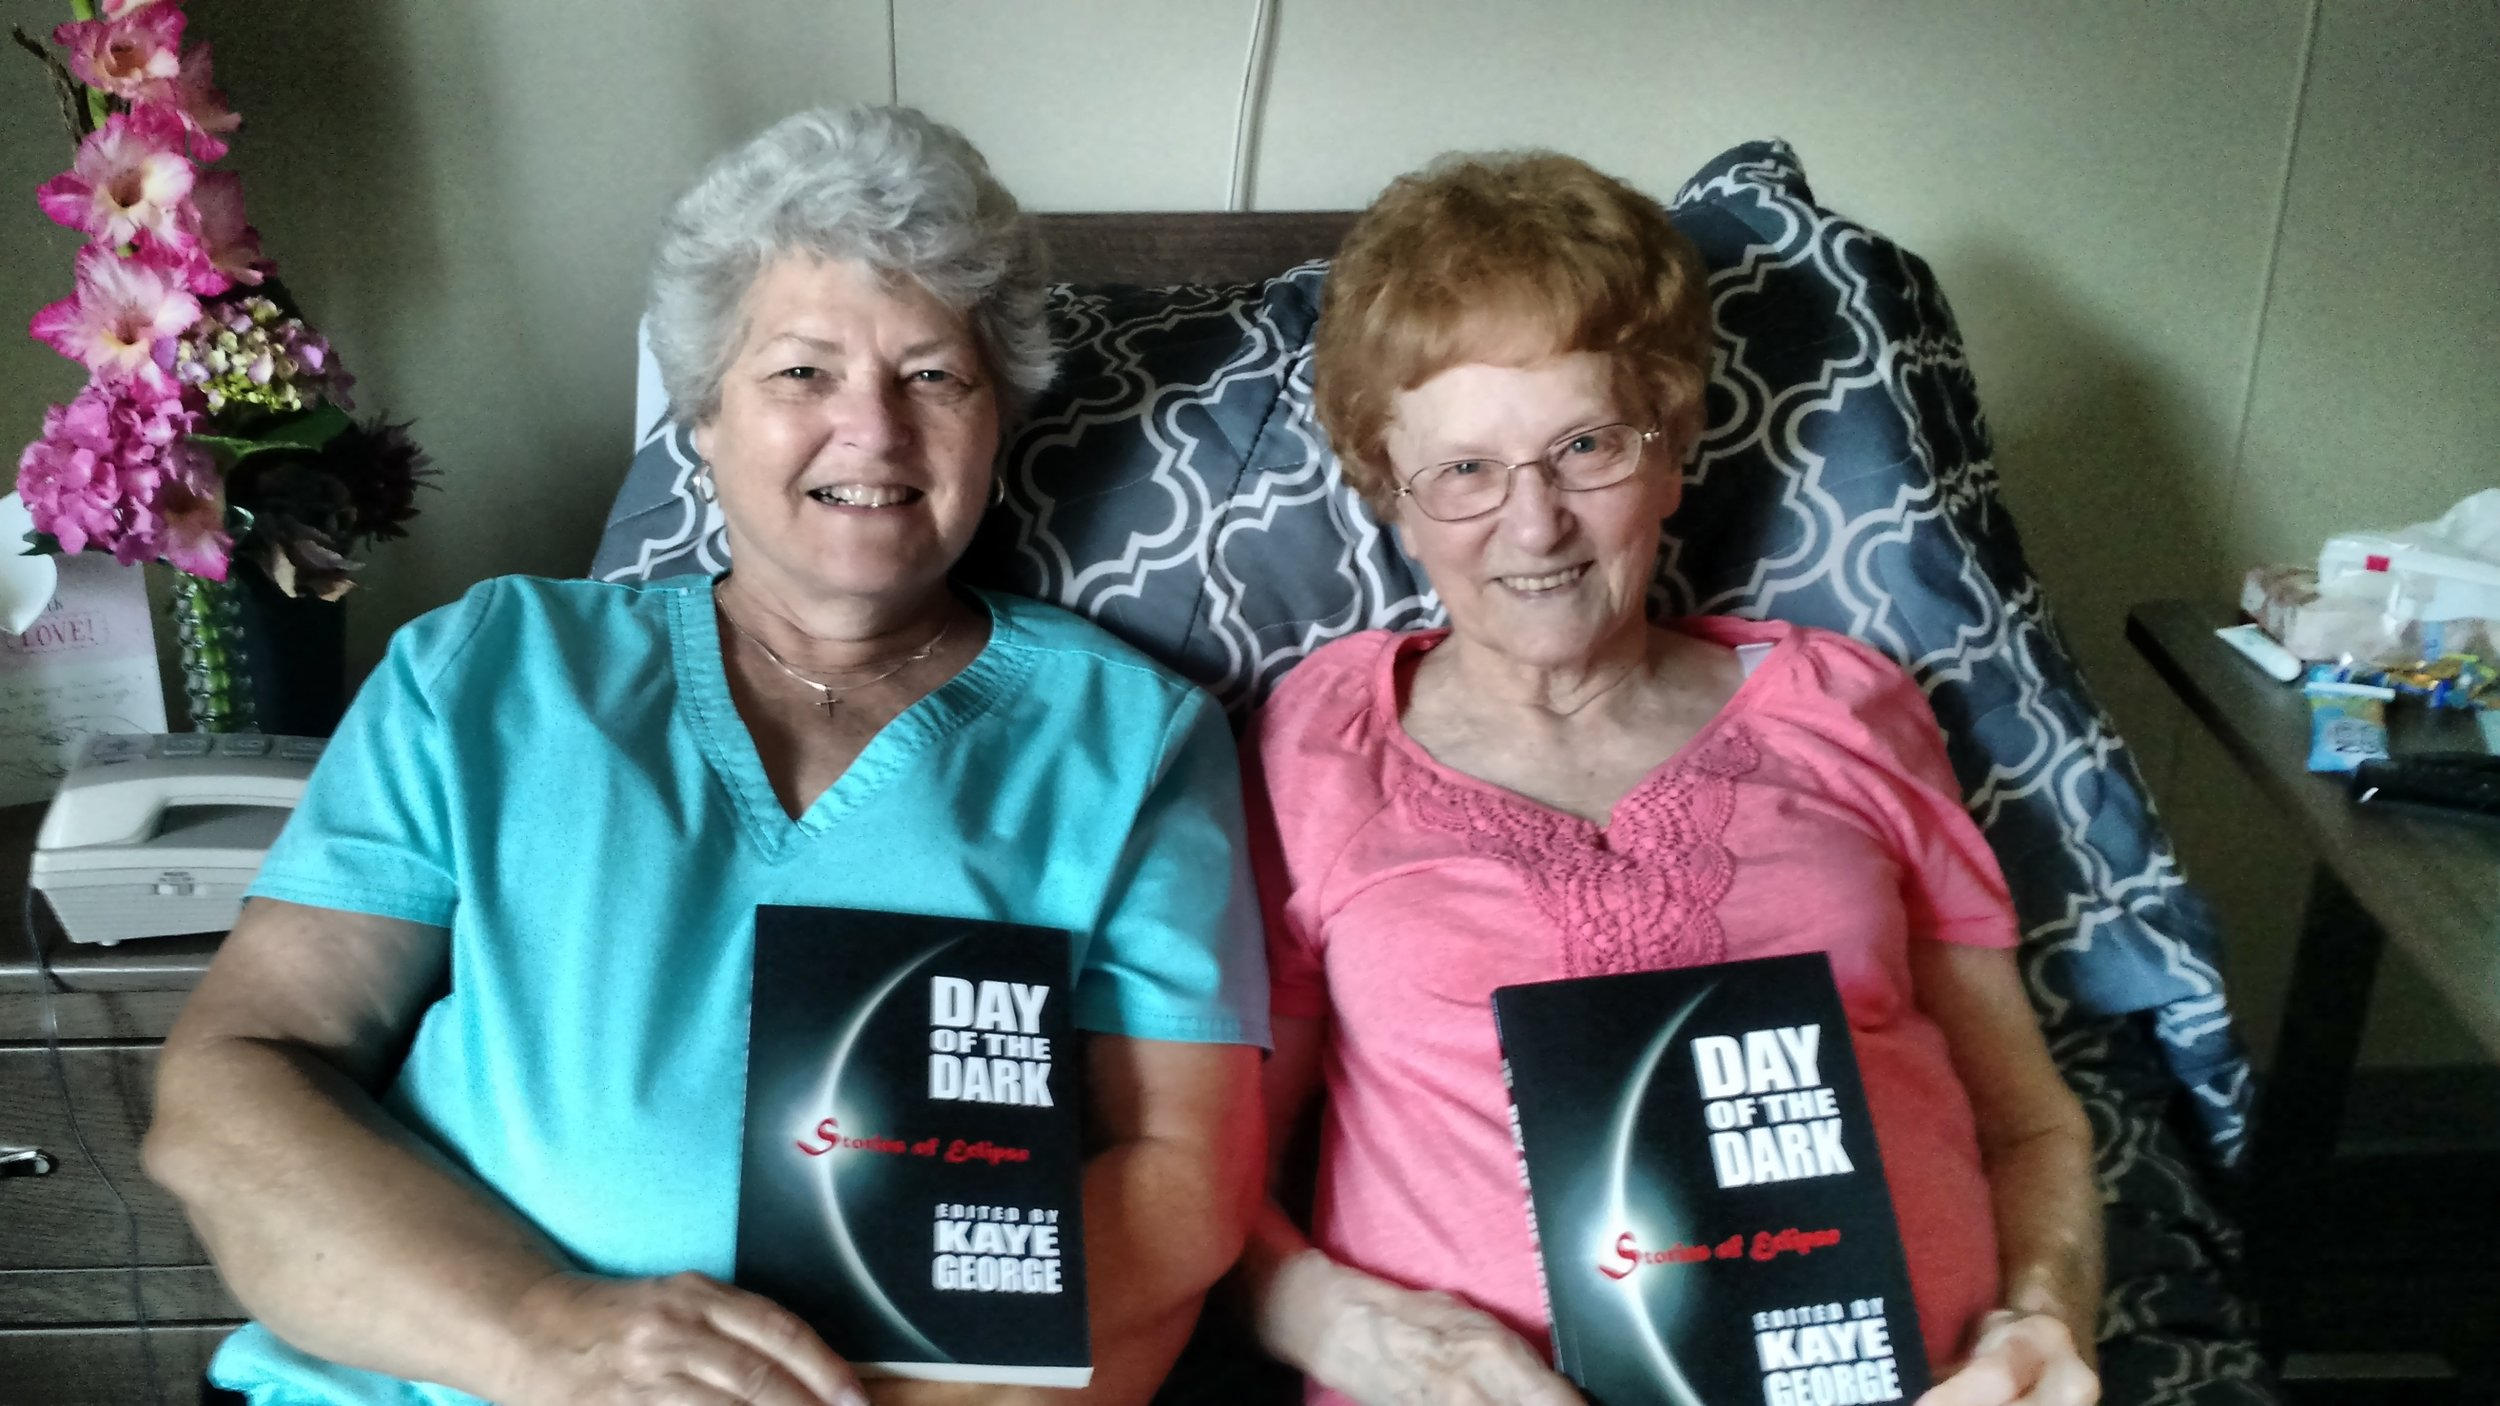 My mom and grandma with their copies. Speedy recoveries for grandma who just had back surgery.